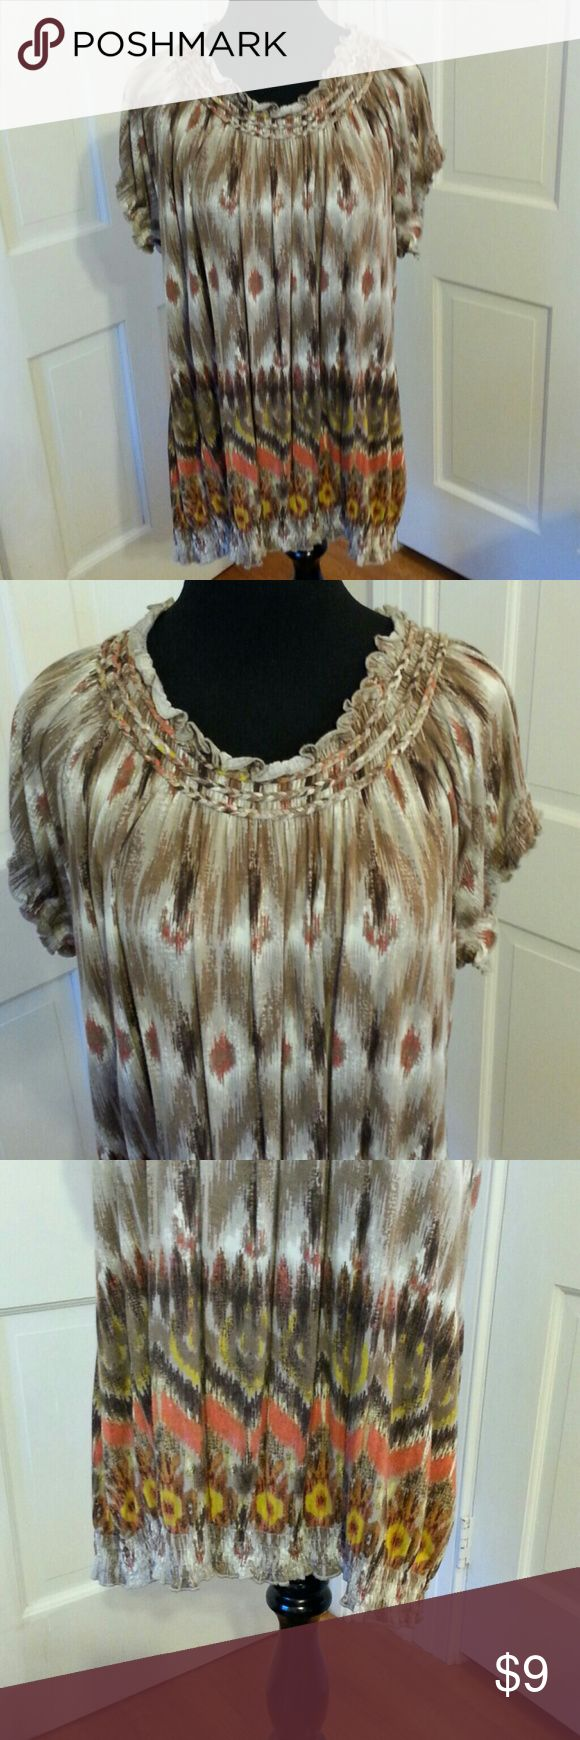 LADIES TOP TRIBAL PATTERN 2X BEAUTIFUL TRIBAL PATTERN LADIES TOP DESIGNED BY MADISON WOMAN 2X. ELASTIC FRONT AND BACK BOAT NECKLINE WITH FLUTTER SHORT SLEEVES.   THE BOTTOM IS A WIDE ELASTIC BAND THAT CAN BE WORN AT THE WAIST OR OVER THE HIPS. GENTLY WORN. Madison Tops Tunics